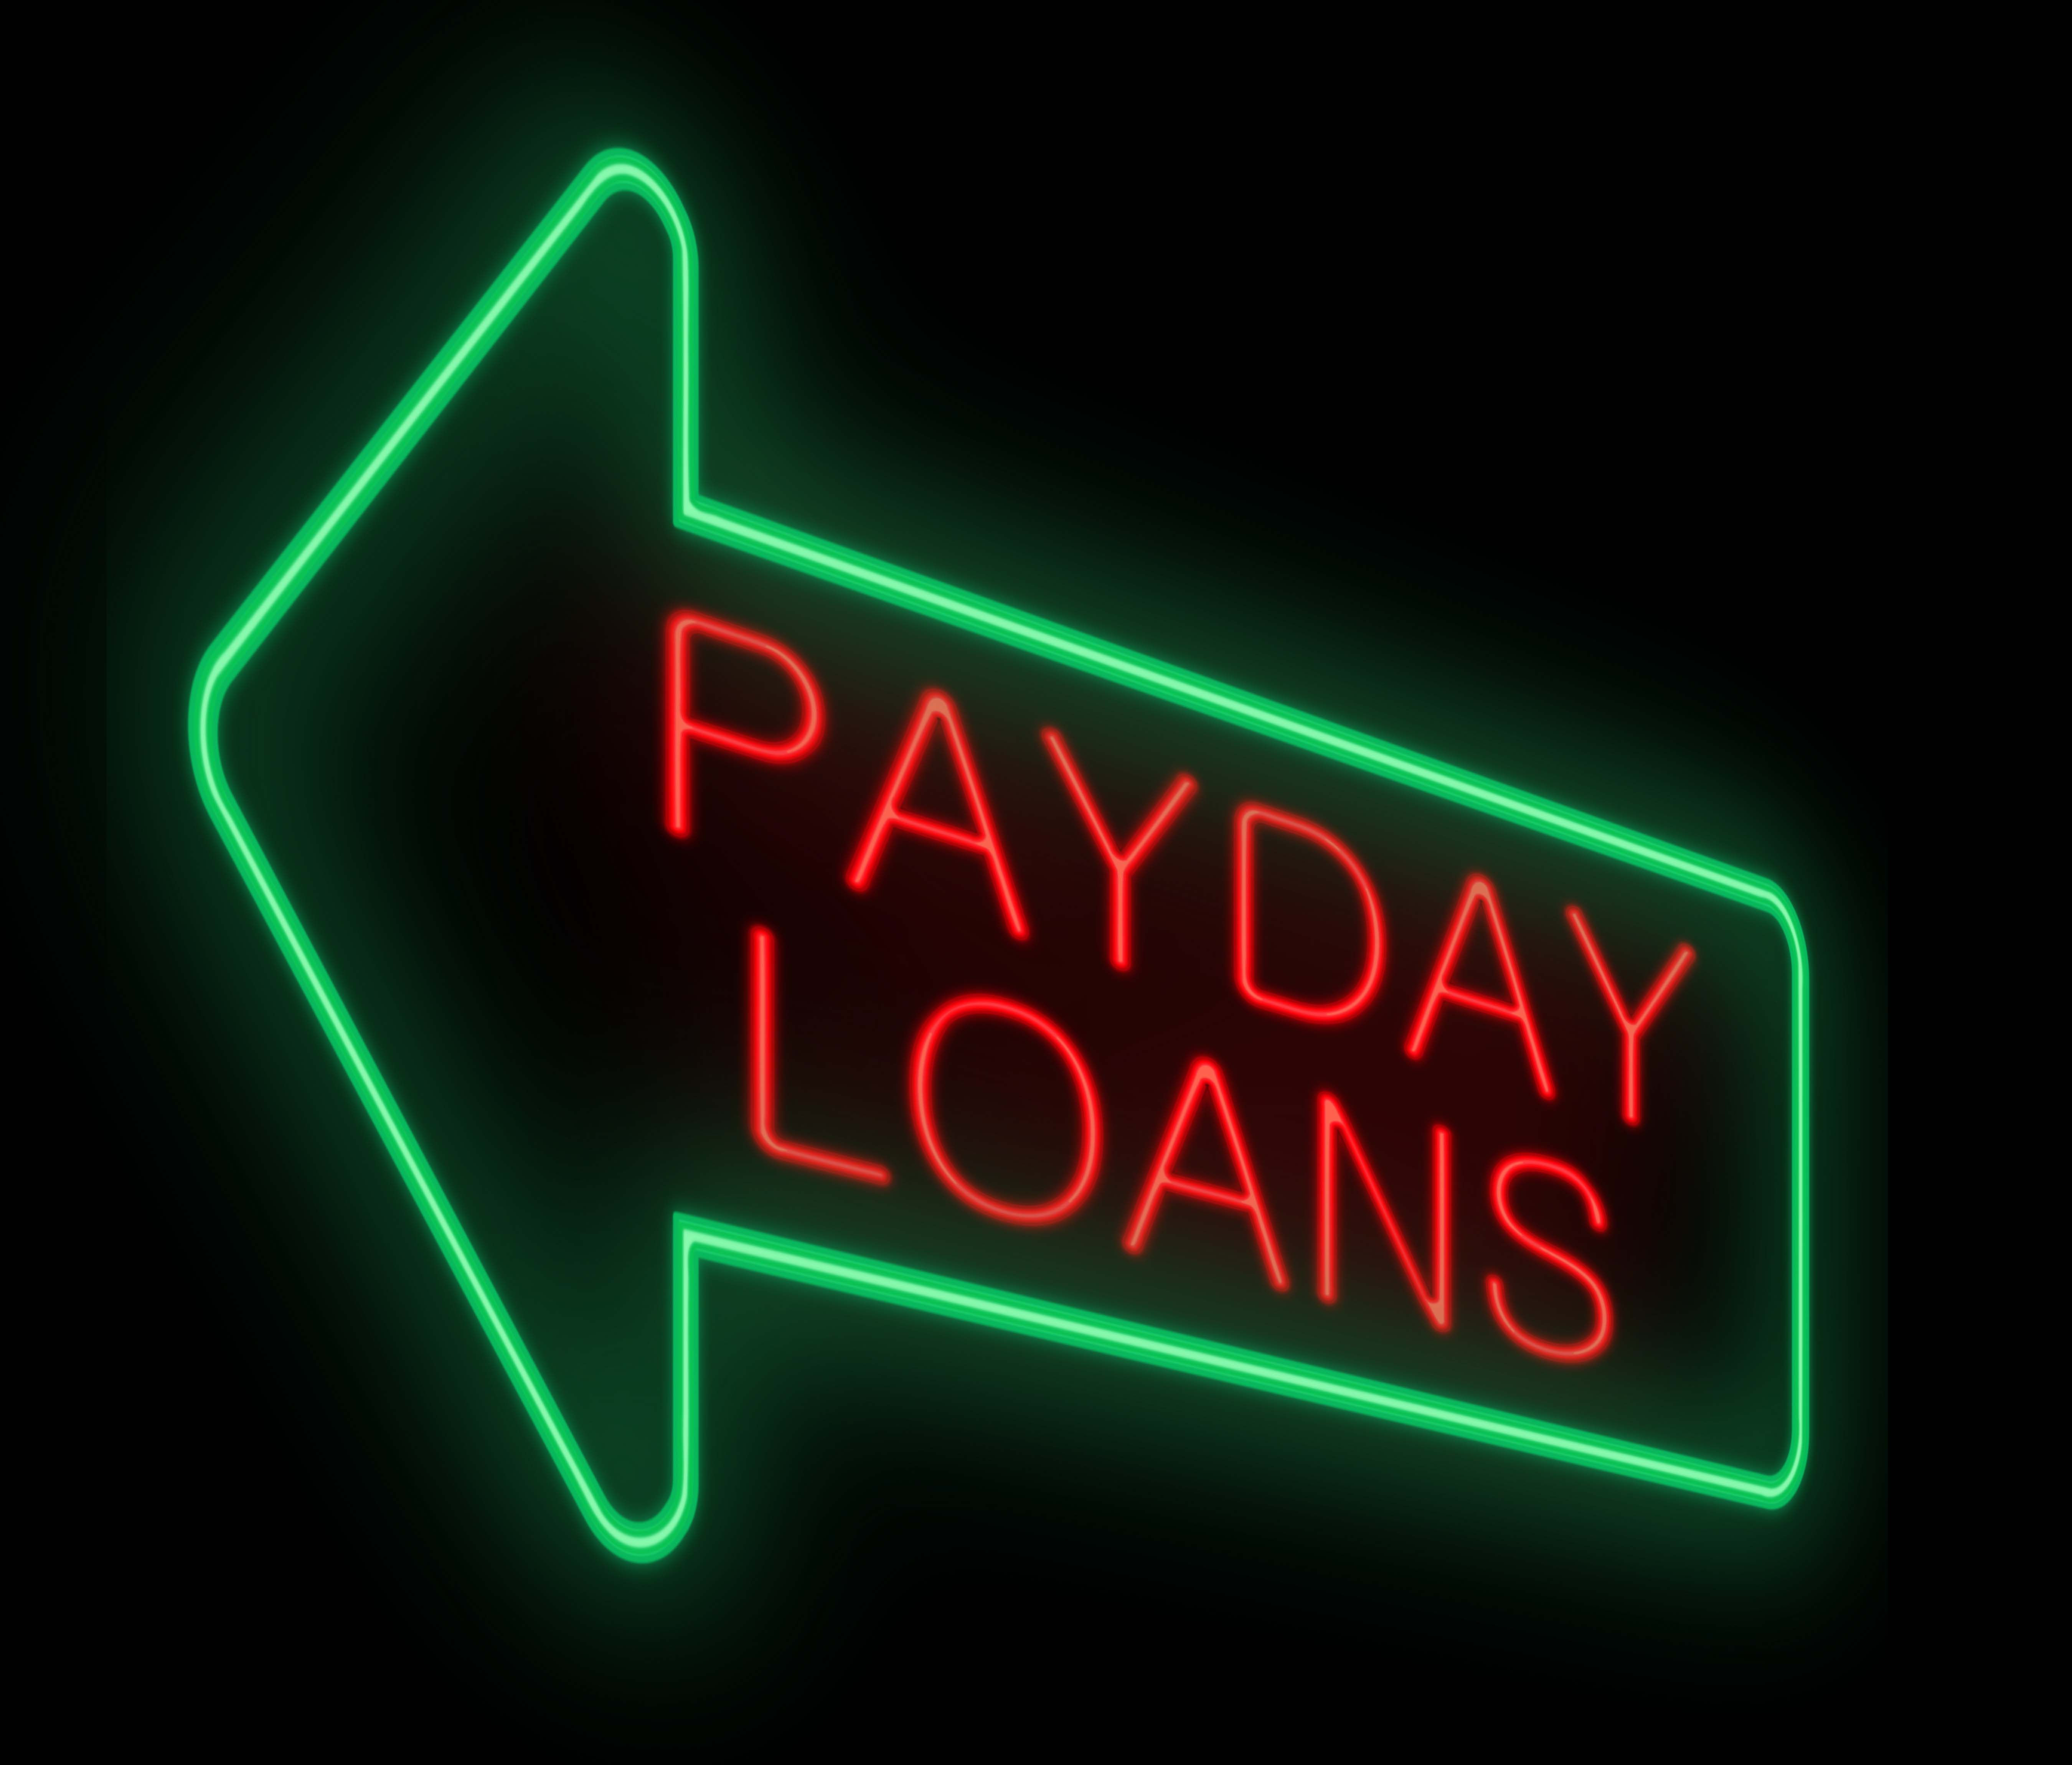 Payday loans in anaheim picture 7